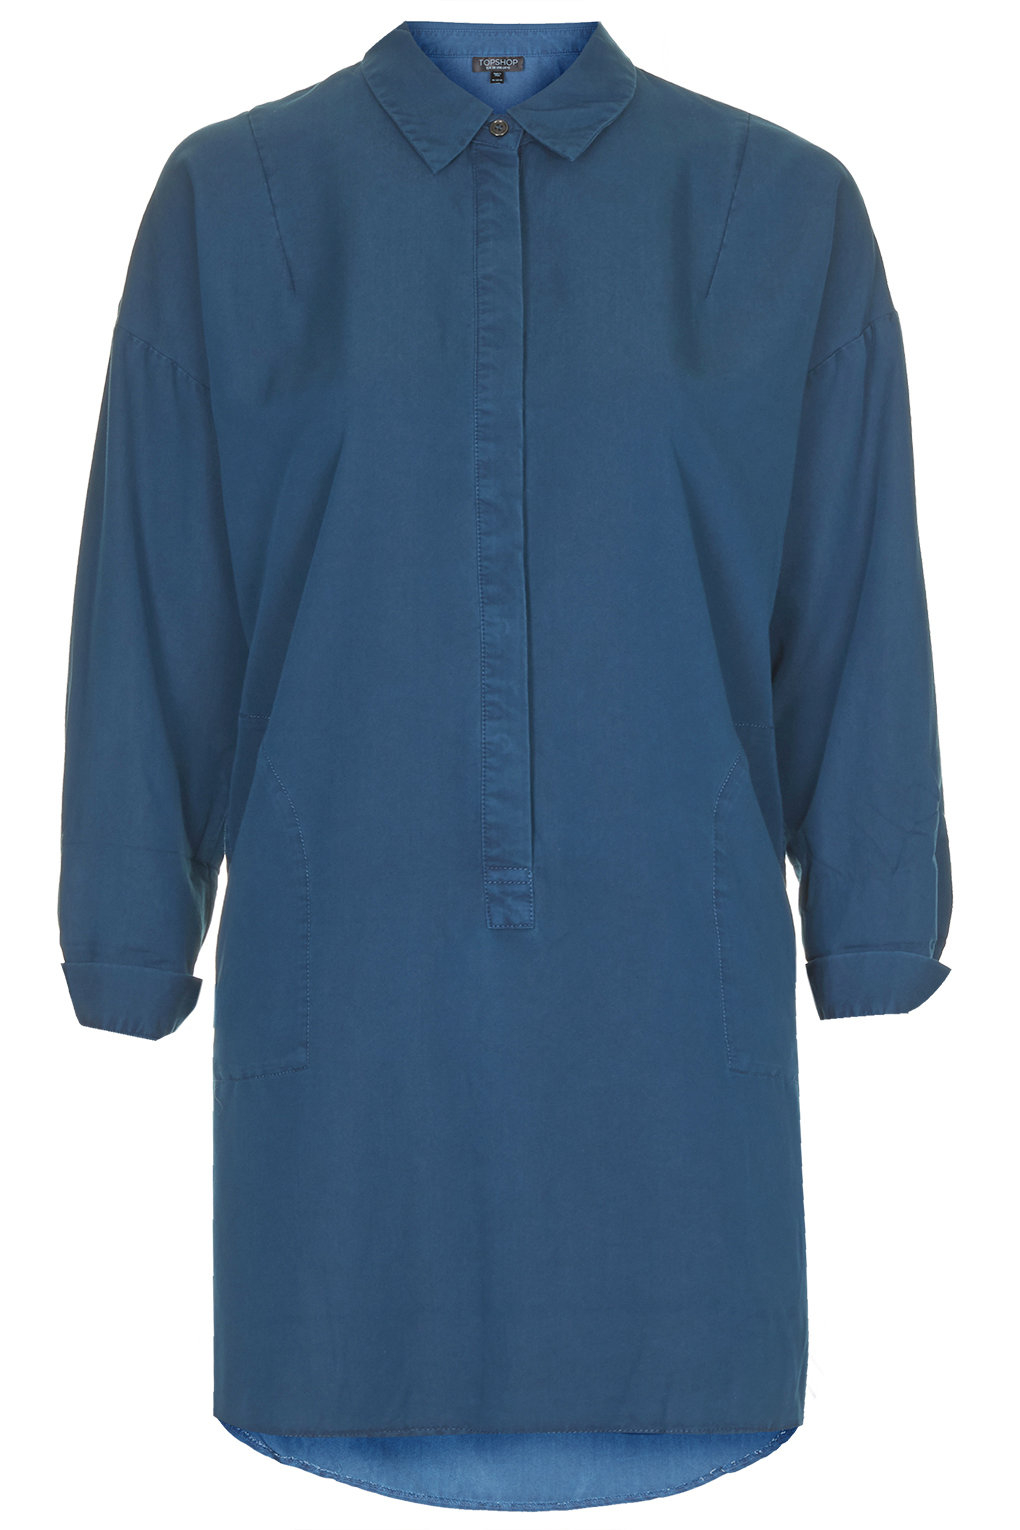 Topshop womens relaxed shirt dress indigo in blue lyst for Womens denim shirts topshop